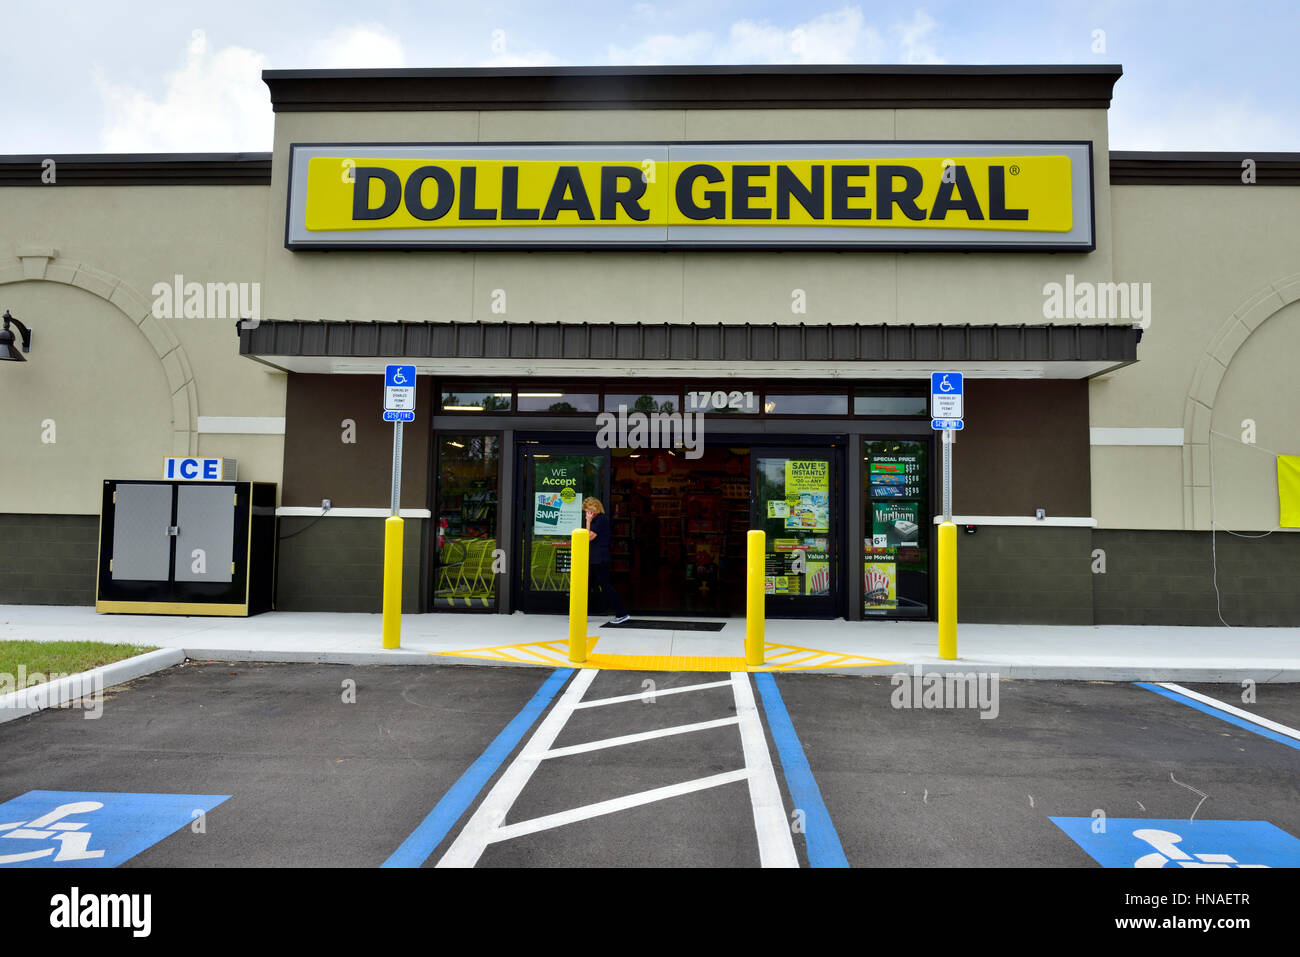 Jul 18,  · If you have the choice between shopping for bargains at Walmart or the local dollar store, there are at least 50 ways Dollar Tree, Dollar General, and the like beat the chain America's come to think of as defining discounts. From flashlights and sunglasses to spices and toilet cleaner, here are some deals to consider.